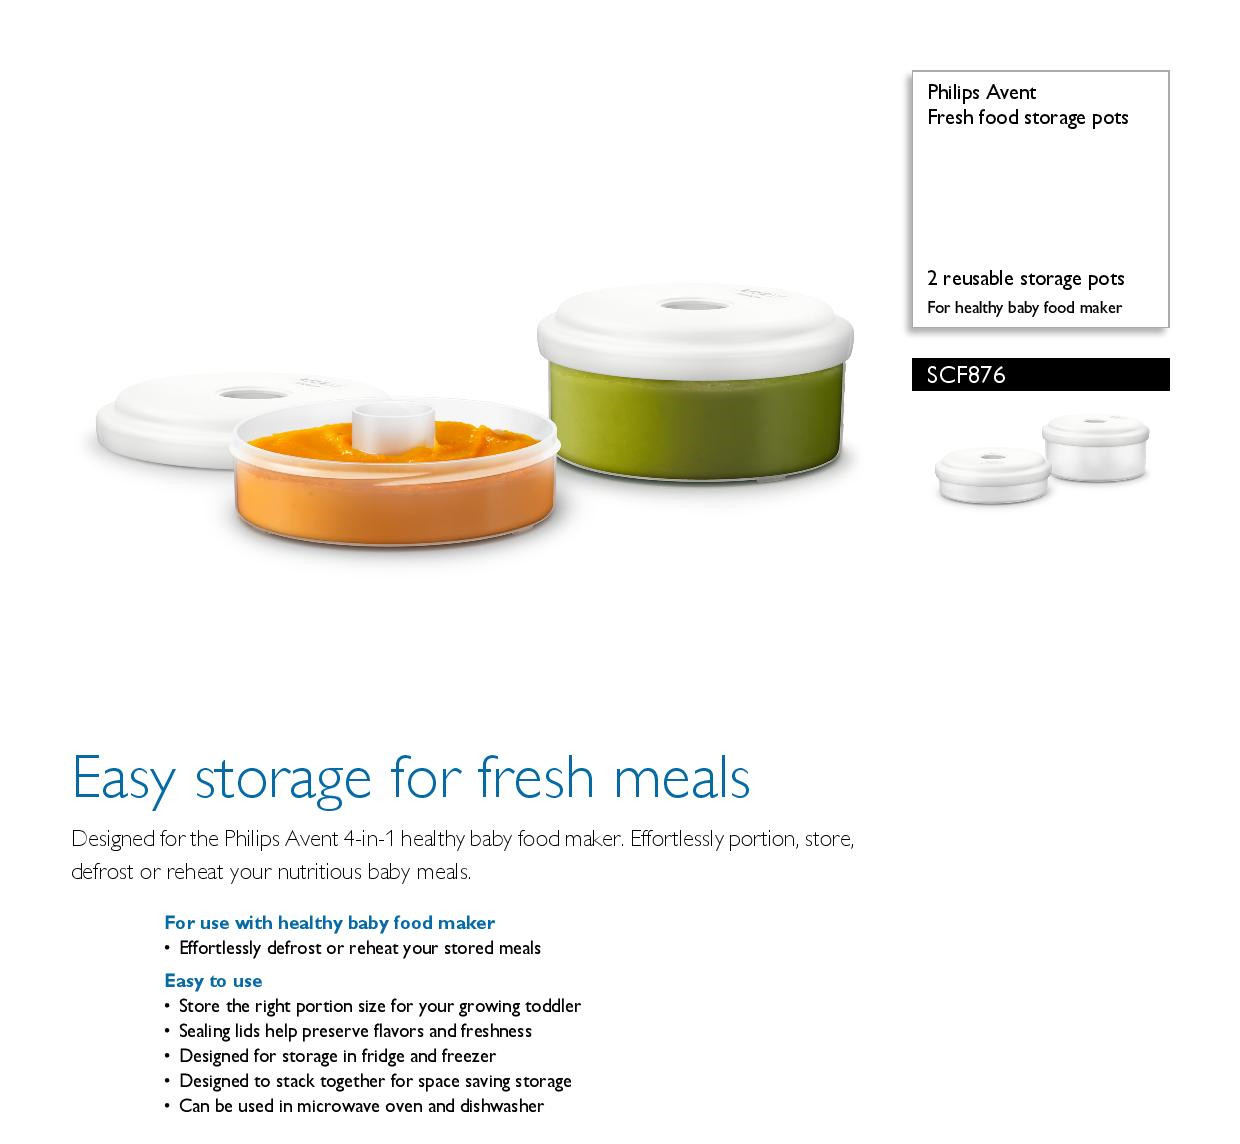 fresh food storage pots scf87602 avent. Qoo10sg Every Need Every Want Every Day  sc 1 st  omniboo.com & Avent Baby Food Storage Pots Philips Avent Fresh Food Storage Baby ...